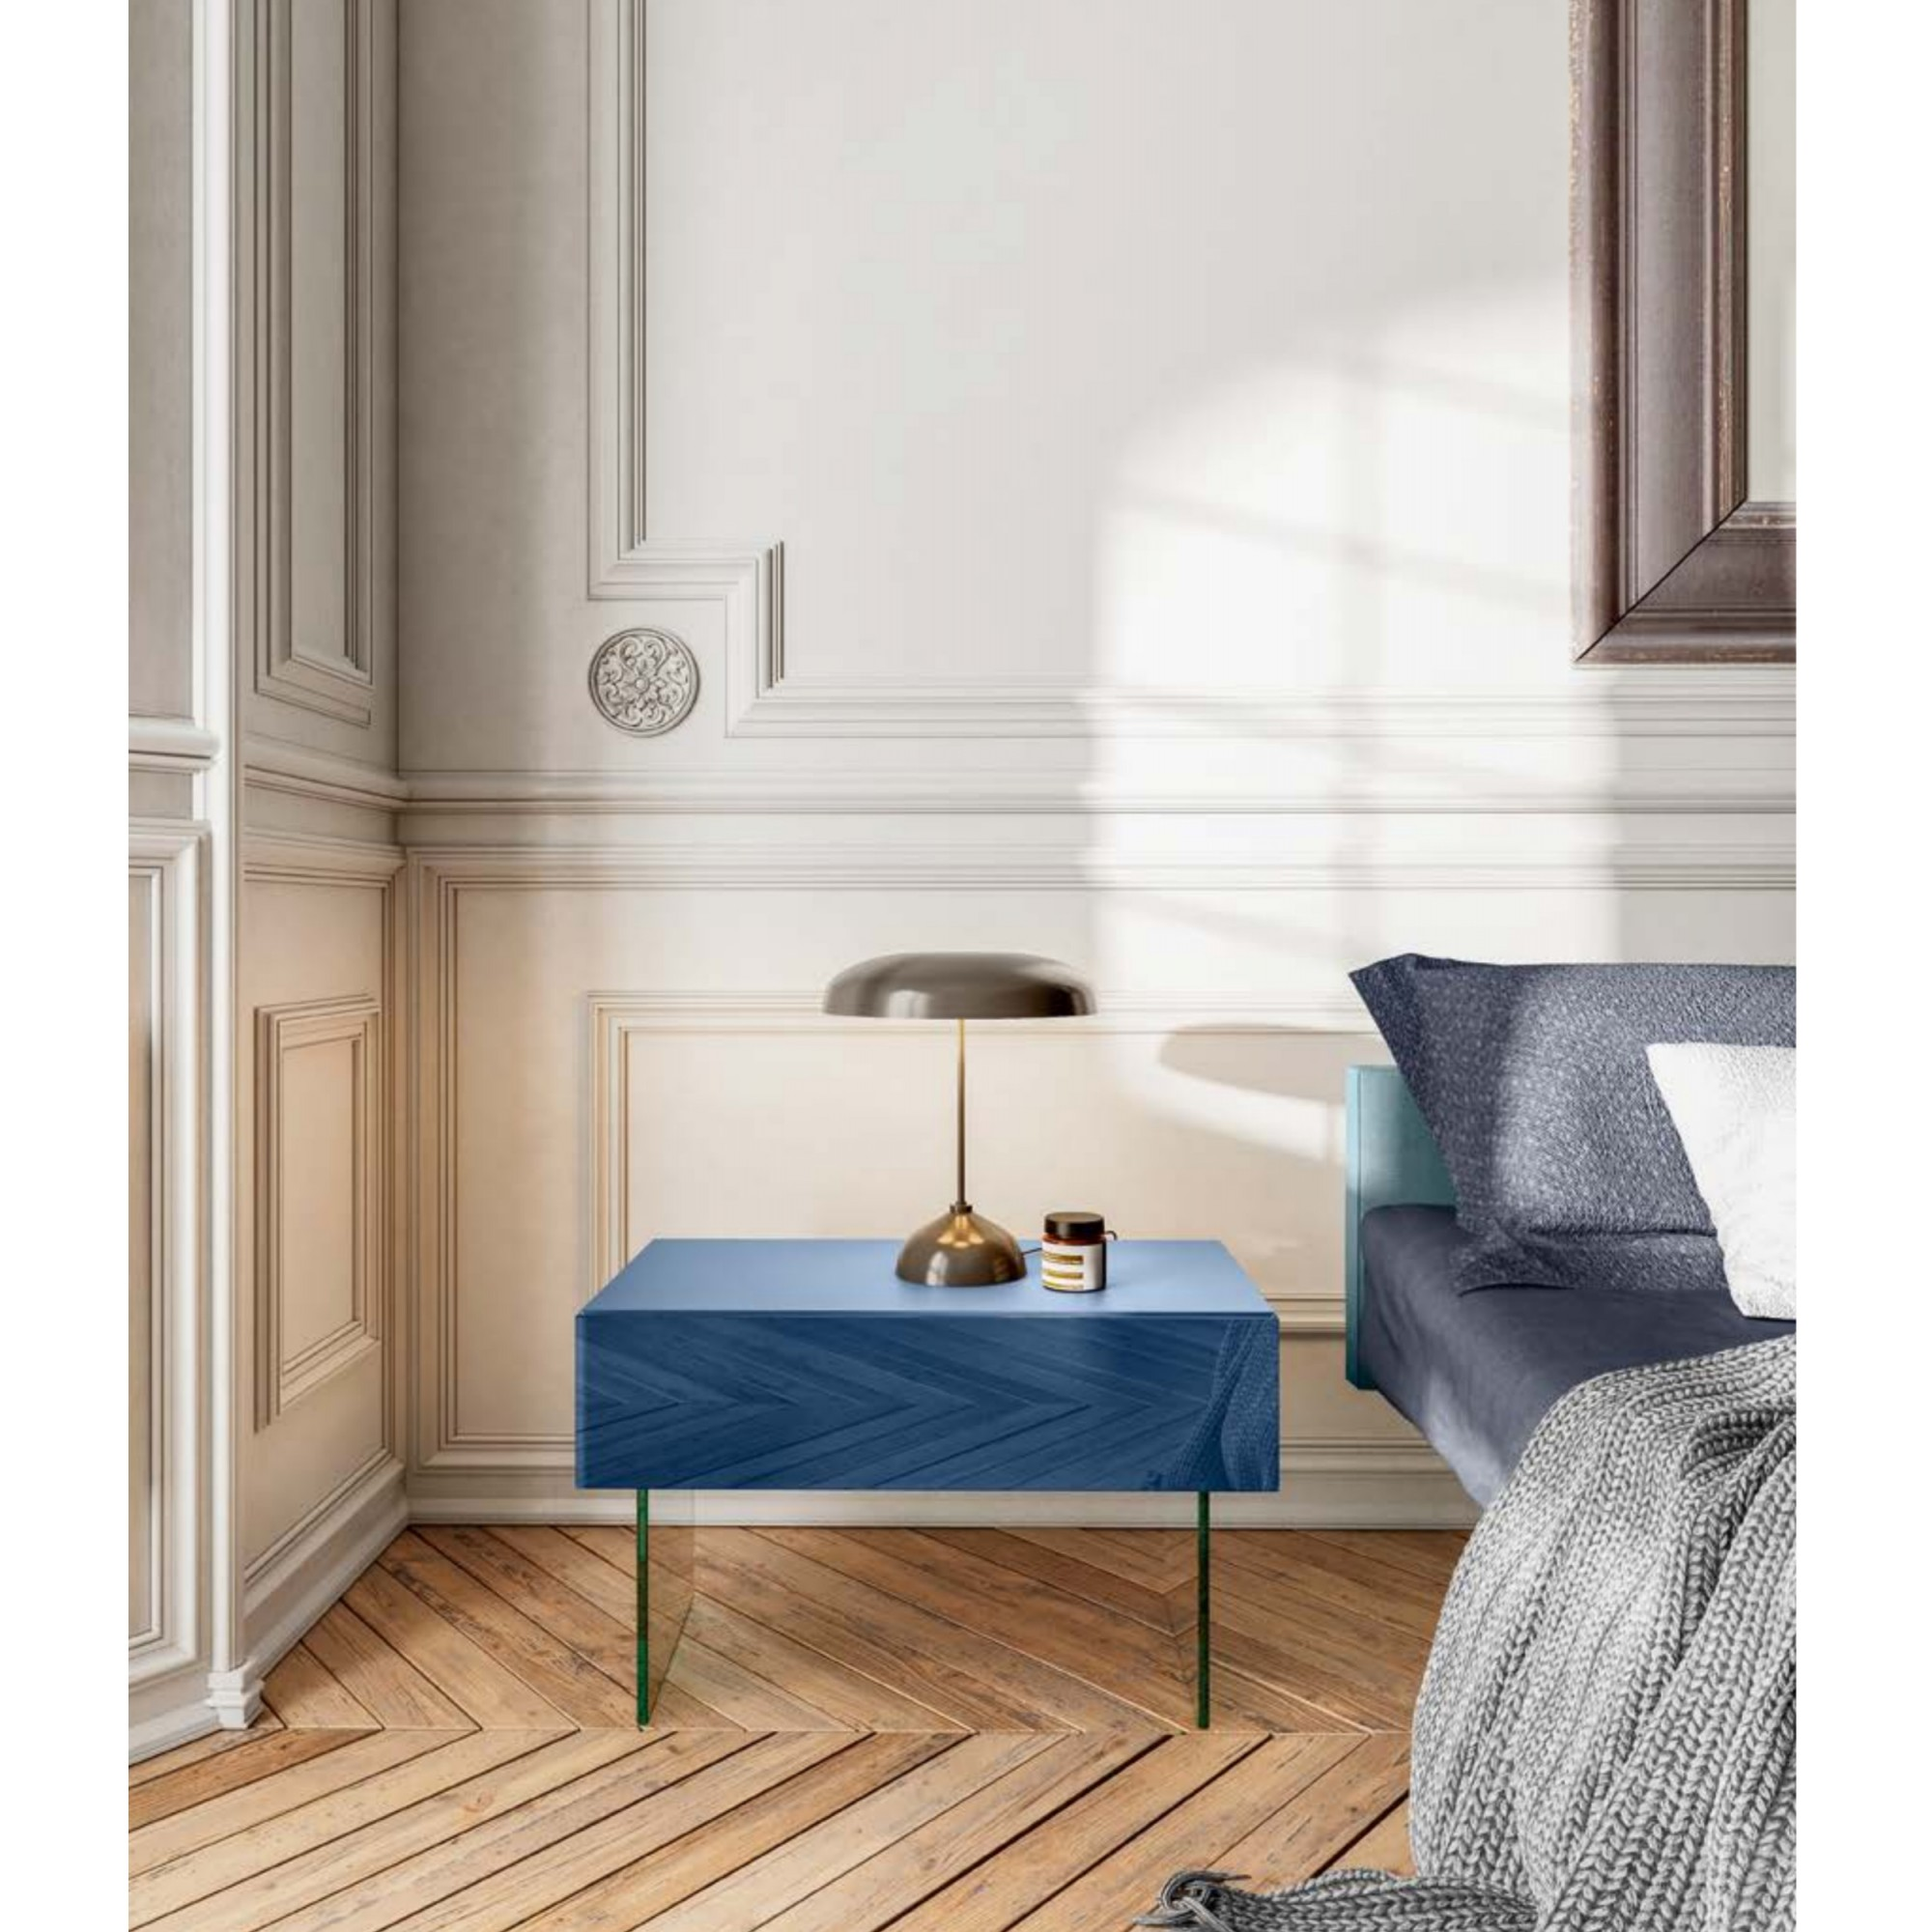 Picture of: 0762 Bedside Tables Dressers And Chest Of Drawers Bedroom Lago Masonionline